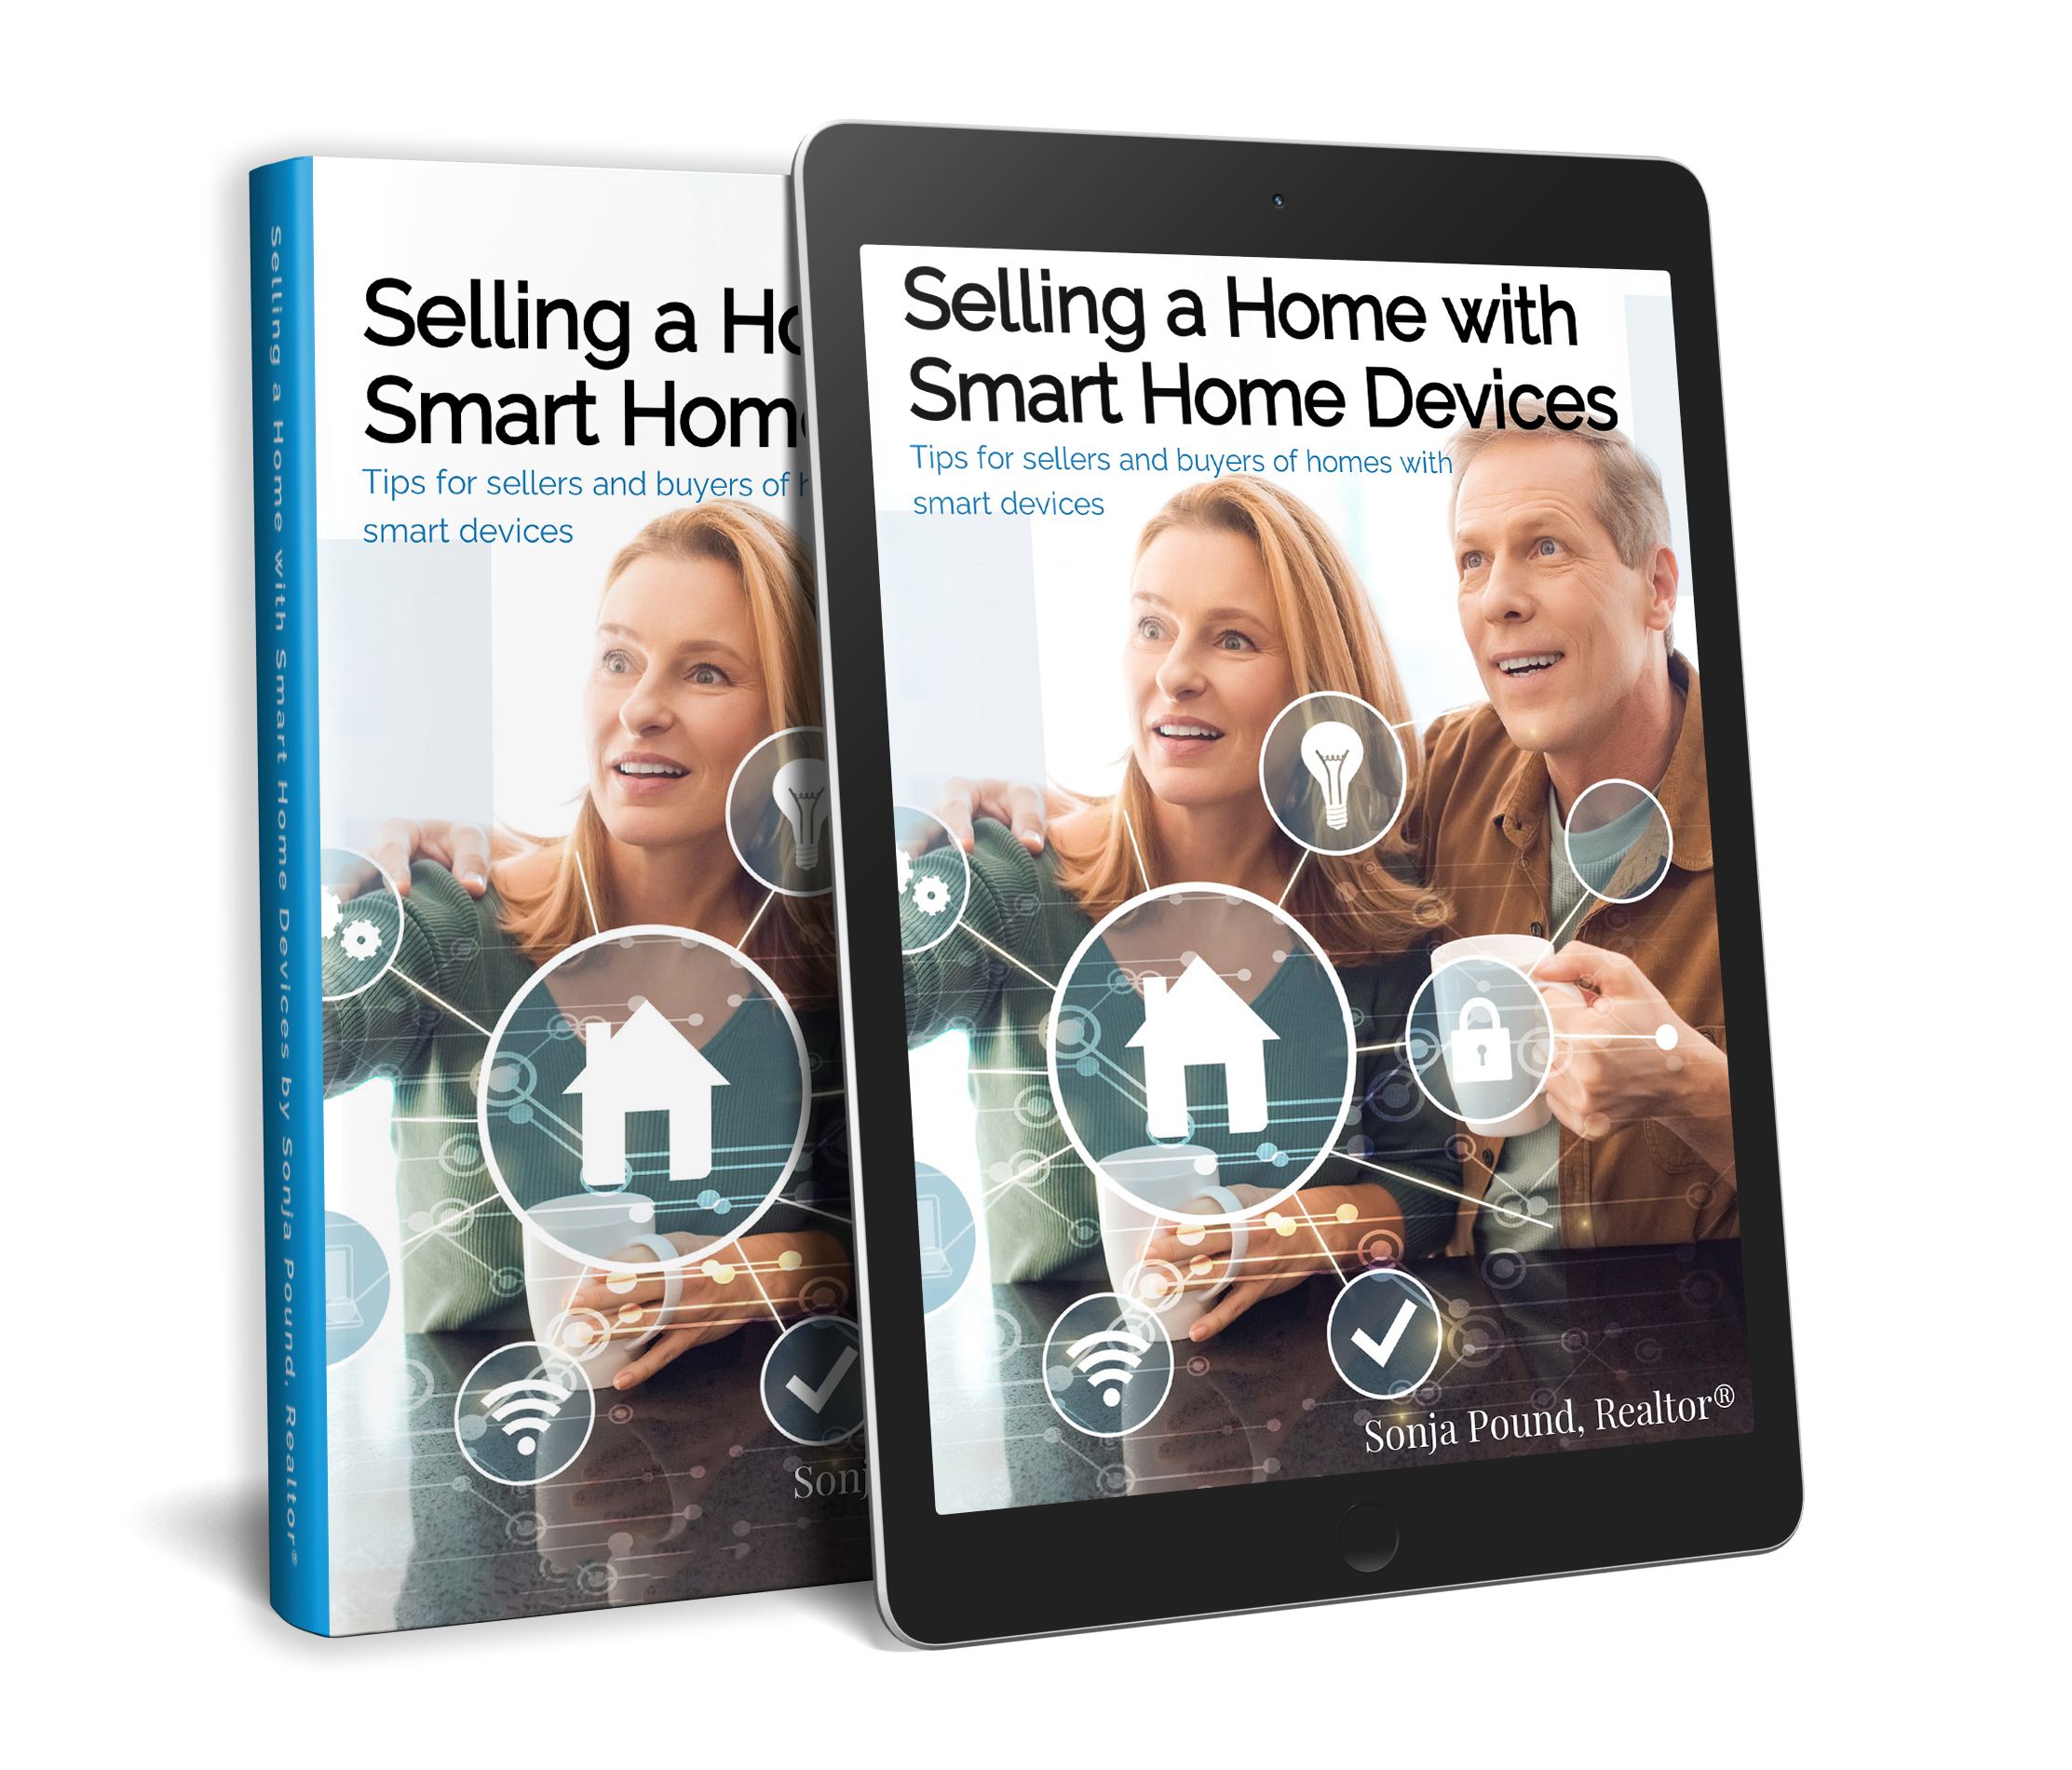 Selling a Home with Smart Home Devices by Sonja Pound, Realtor